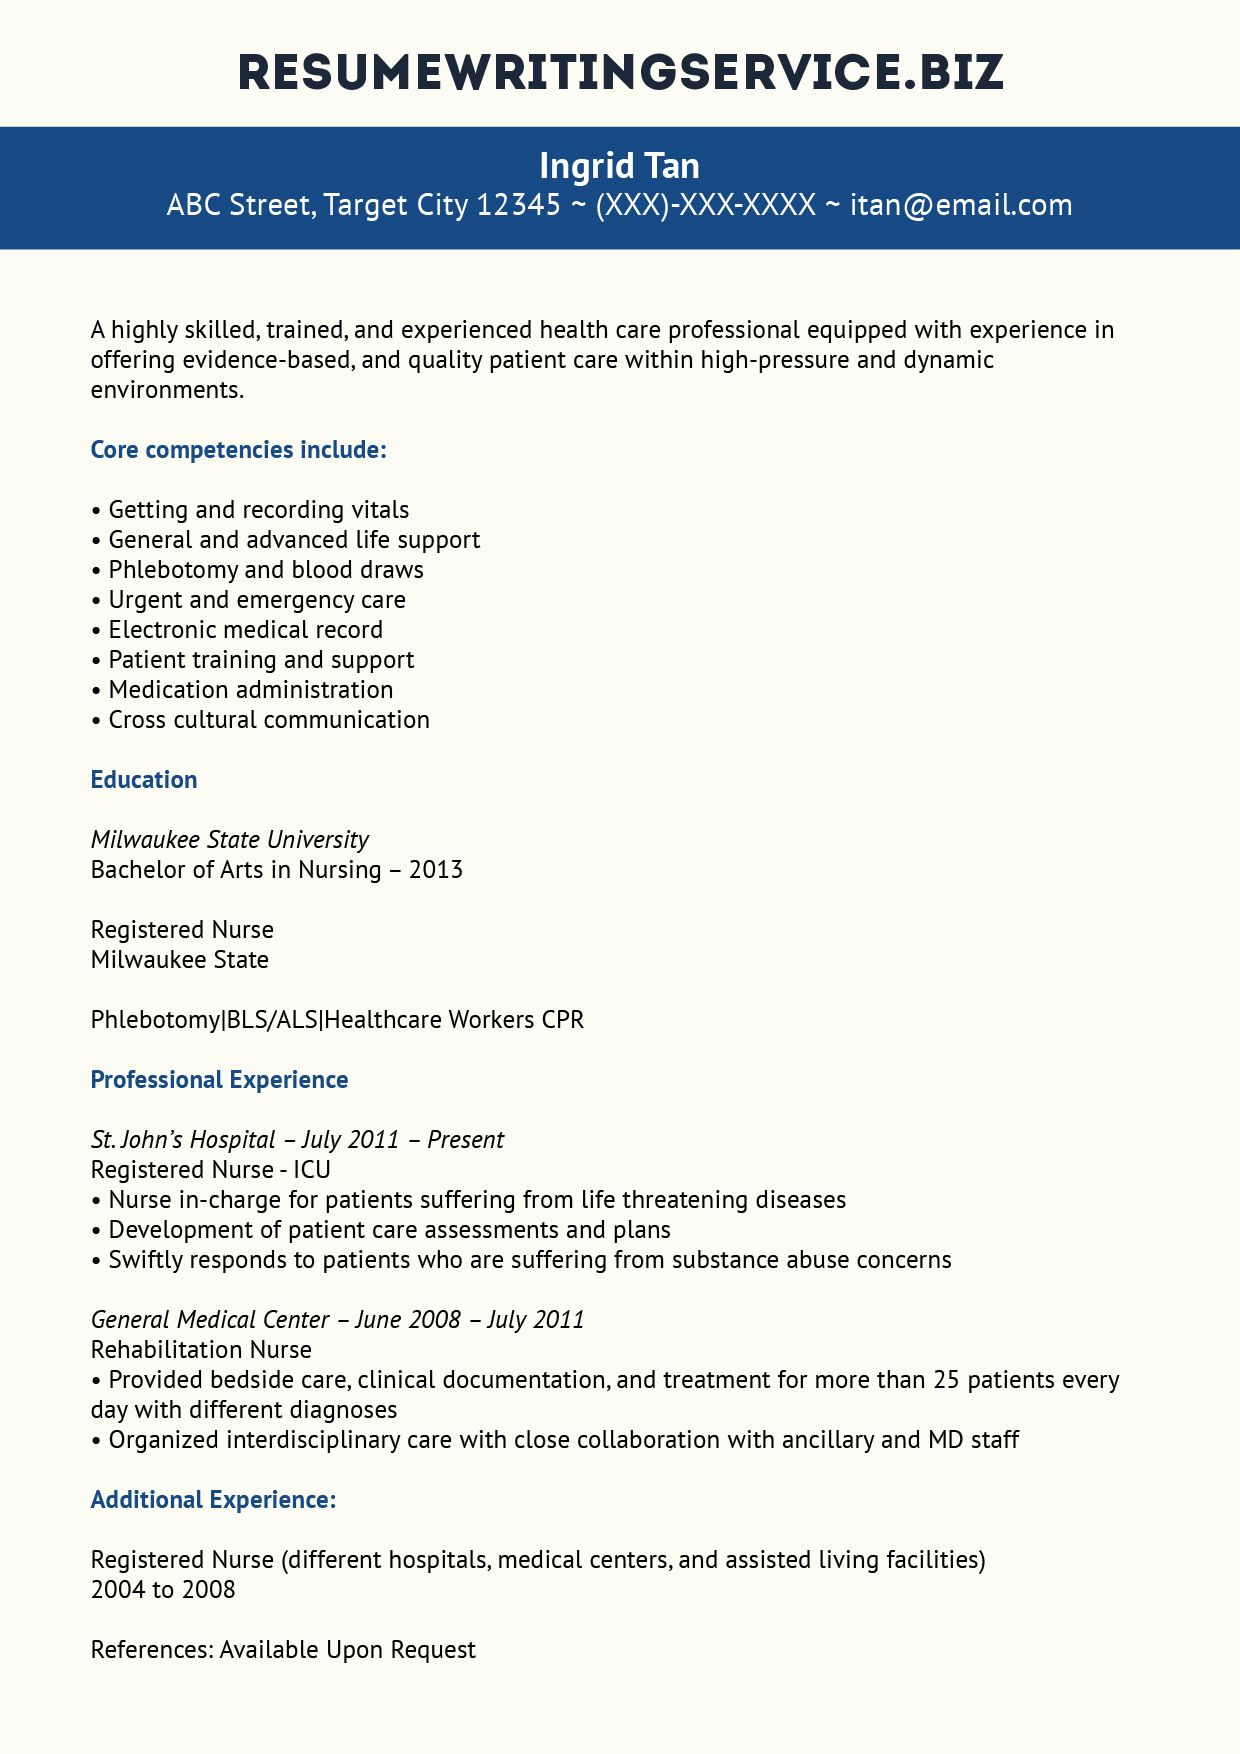 Experienced Nurse Resume Sample Nursing resume, Resume